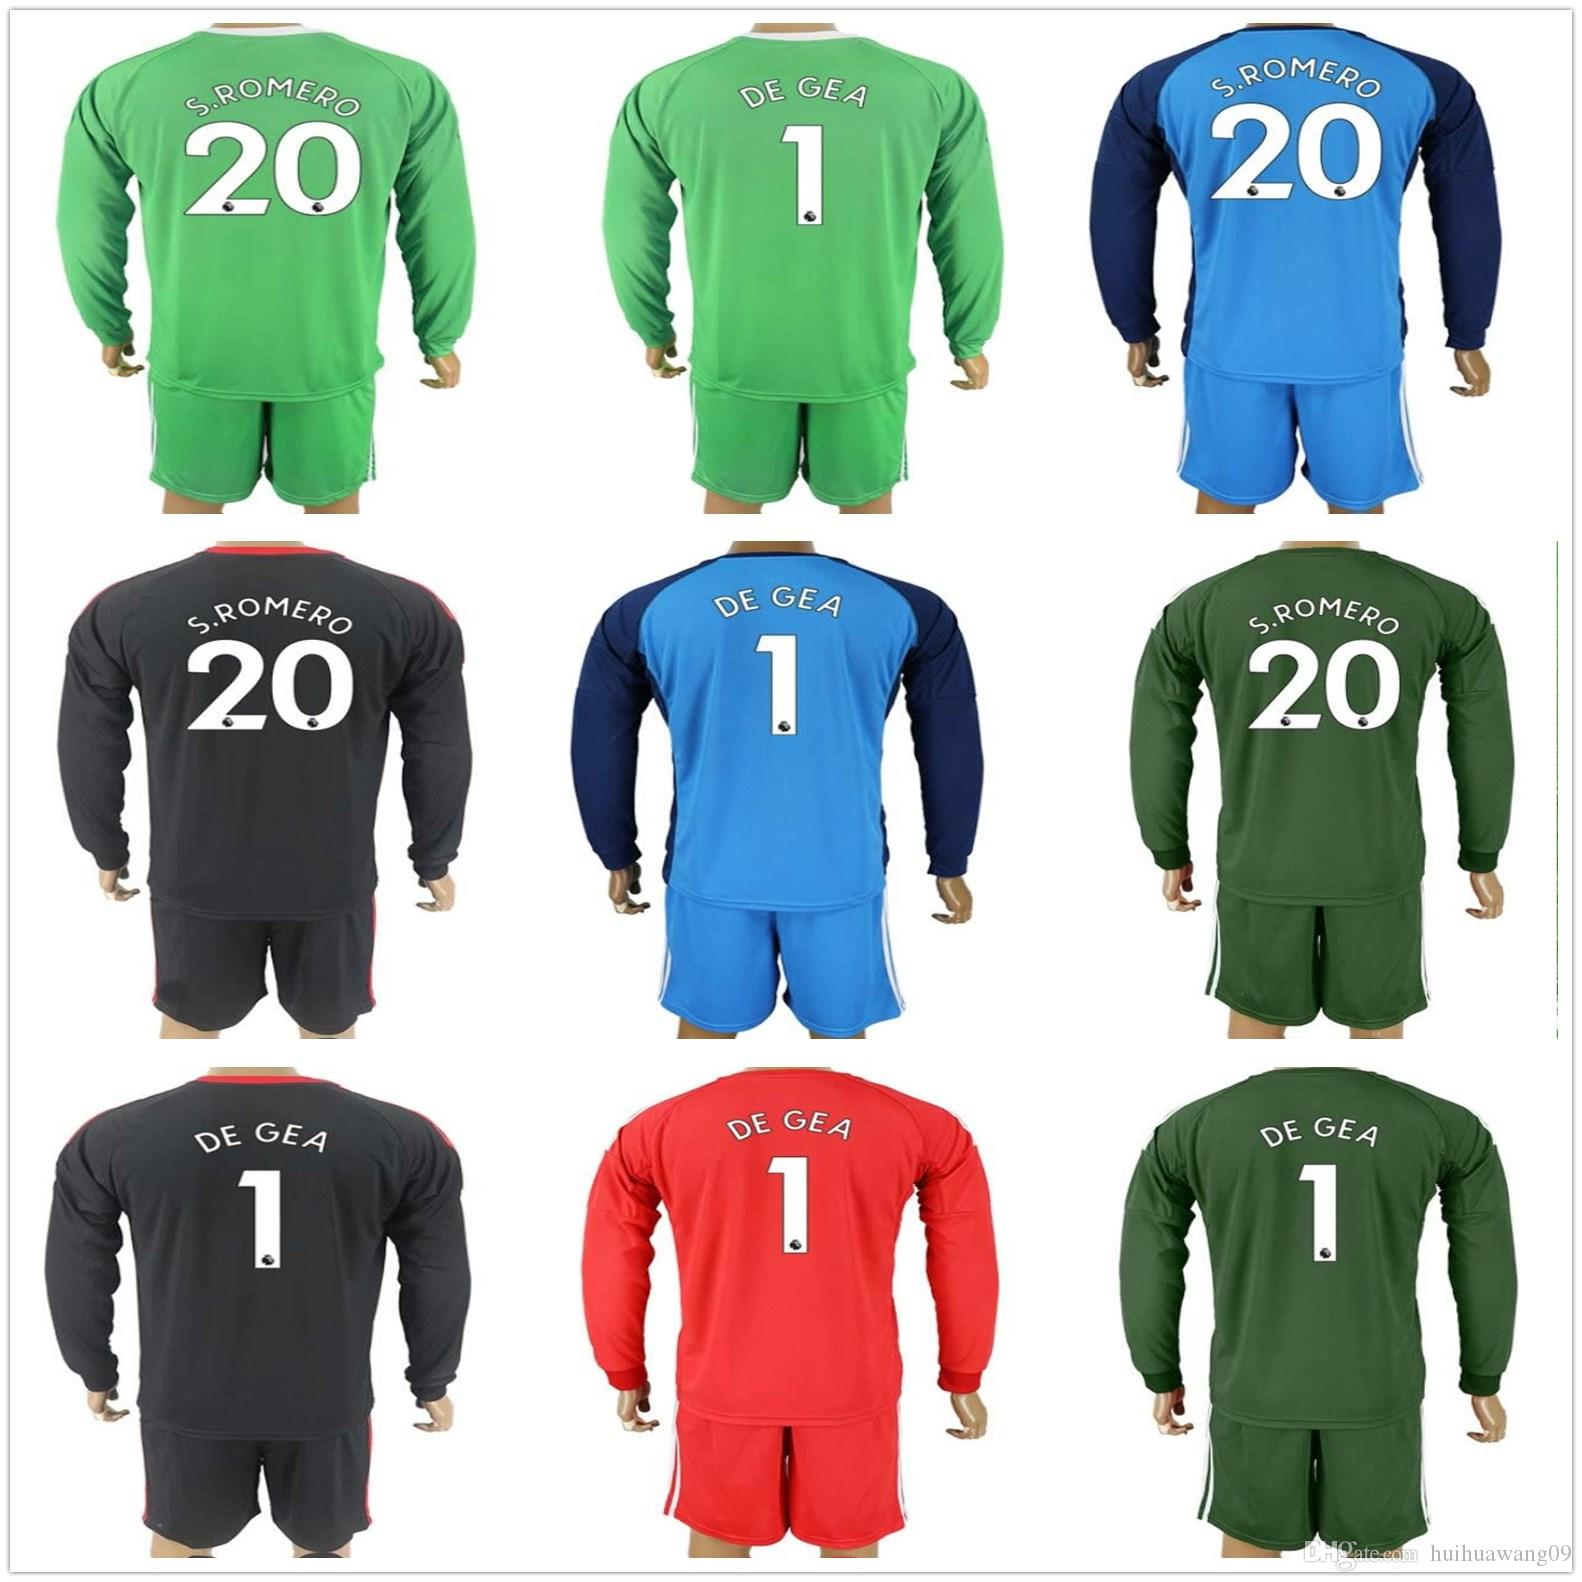 new arrivals ab9b5 19422 argentina 1 romero red goalkeeper 2018 fifa world cup soccer ...